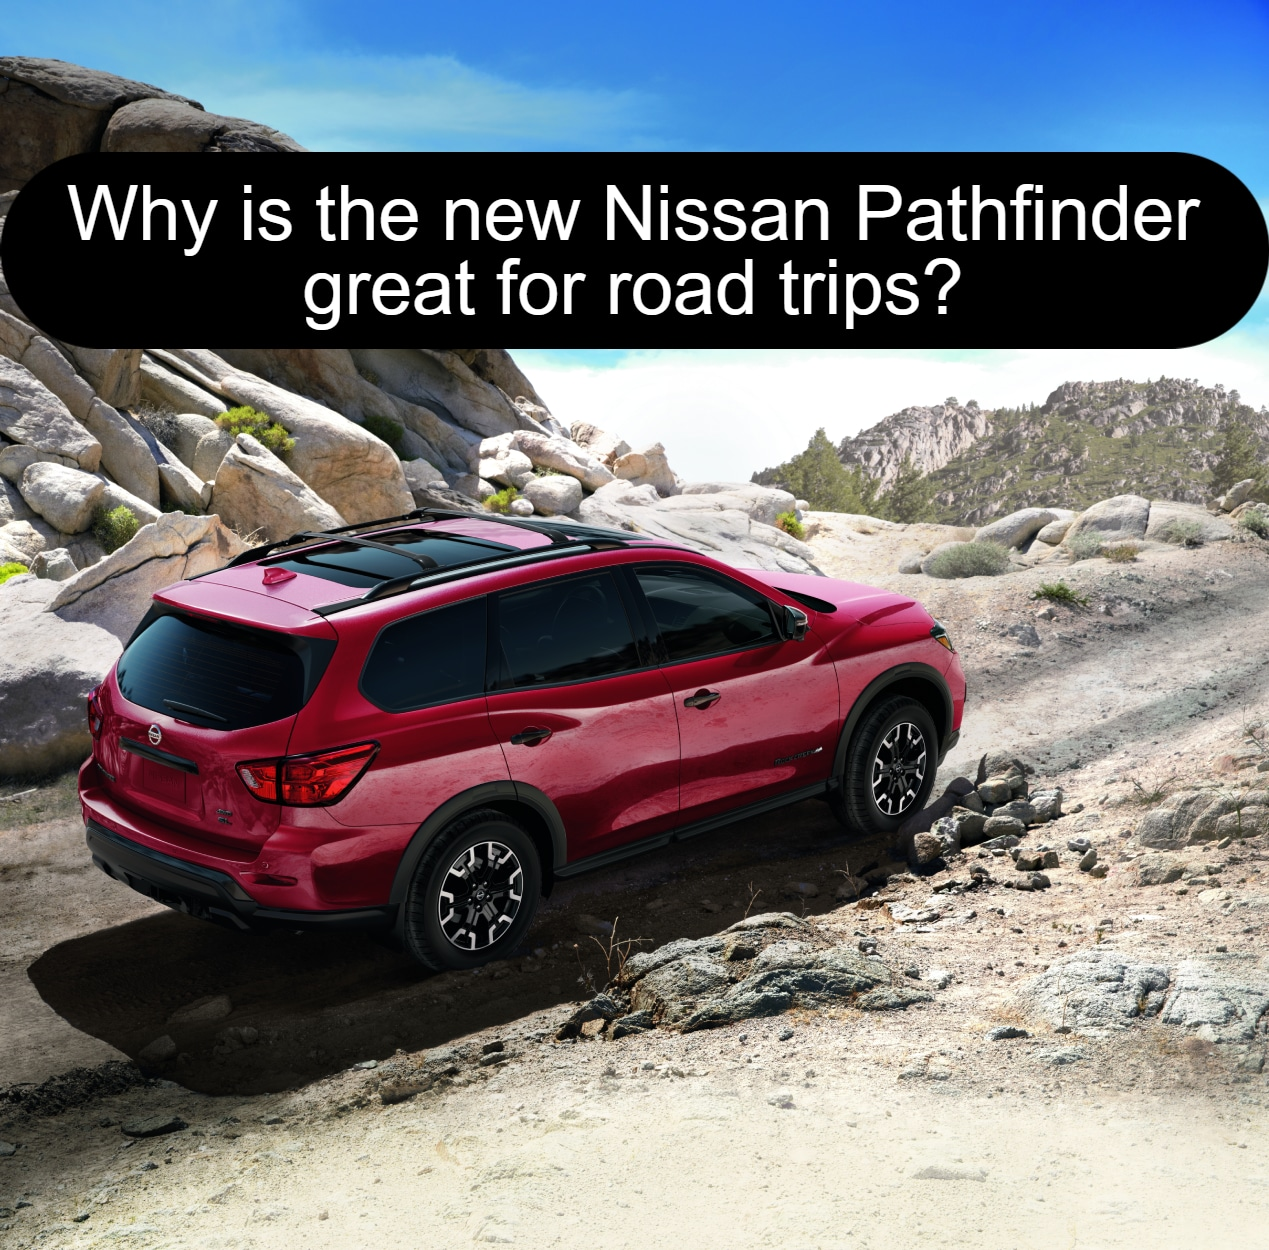 Red Nissan Pathfinder SUV going uphill off road